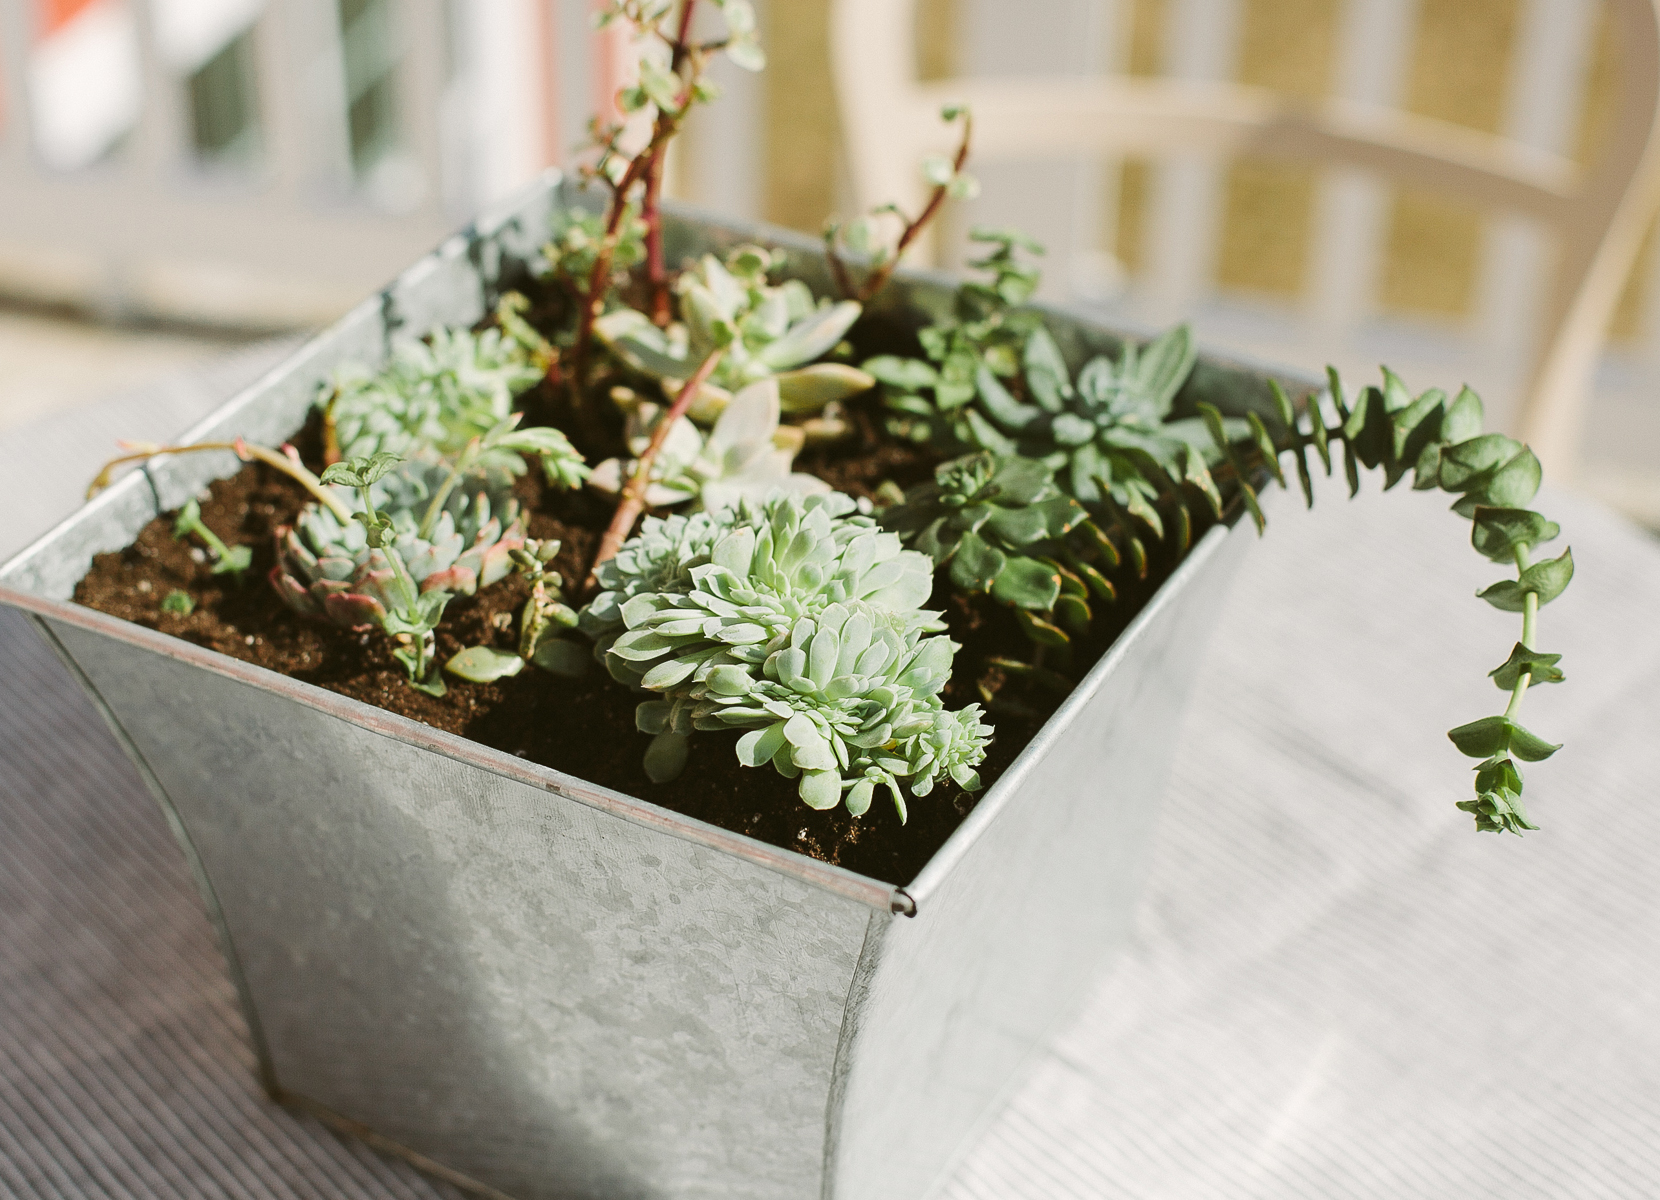 Succulent Planting 101  |  The Fresh Exchange